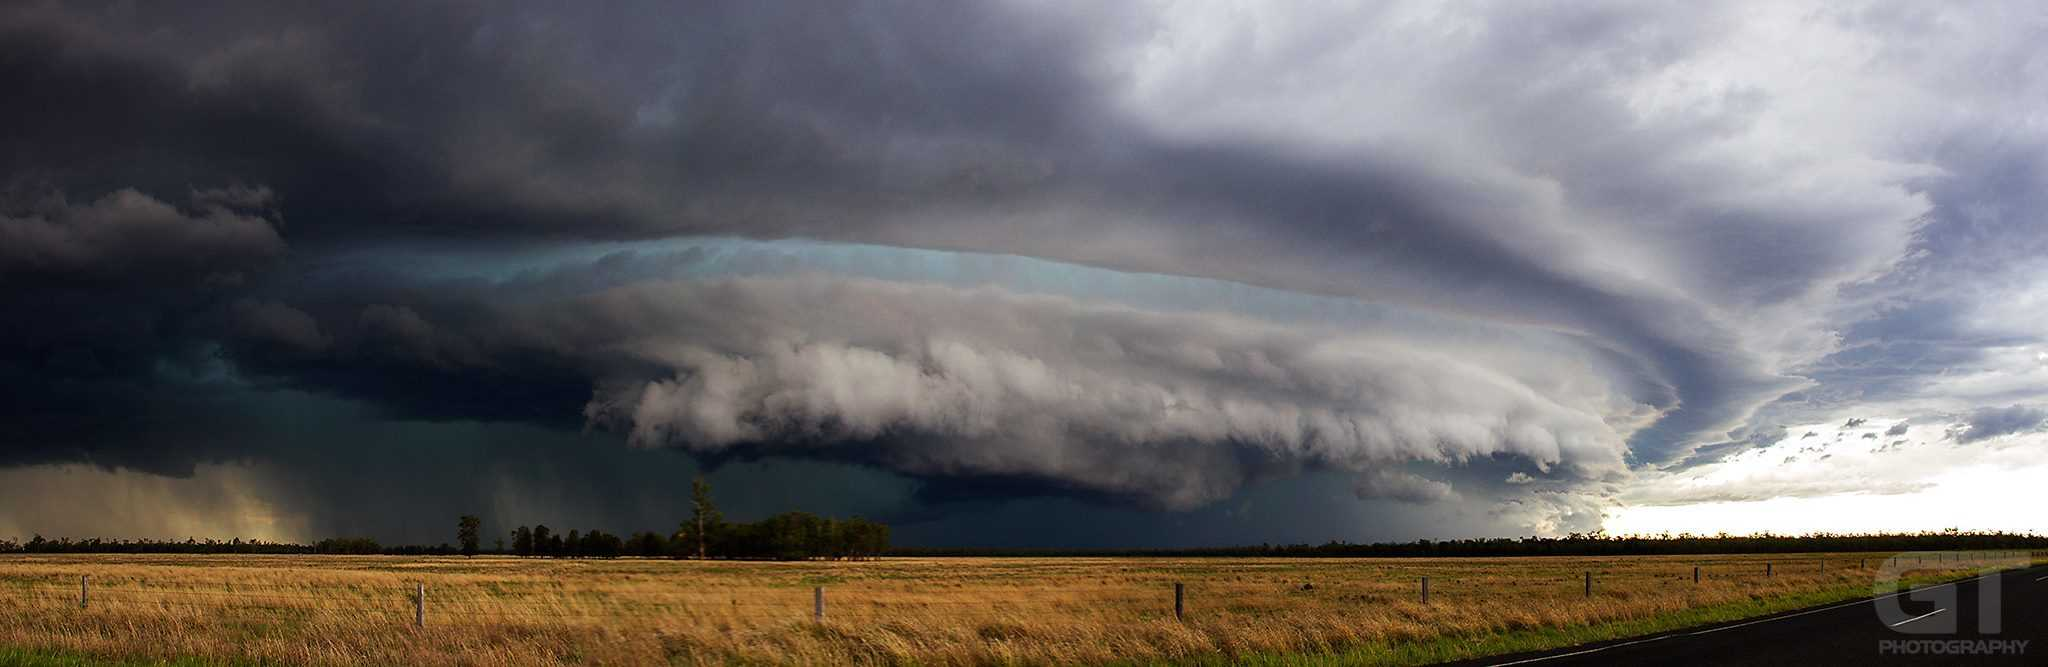 The amazing Moonie Supercell storm from two years ago (November, 23rd, 2013). Still one of the best storms I've seen since relocating to Queensland four years ago. The green/blue hue in the middle layers of this storm was truly mesmerizing.